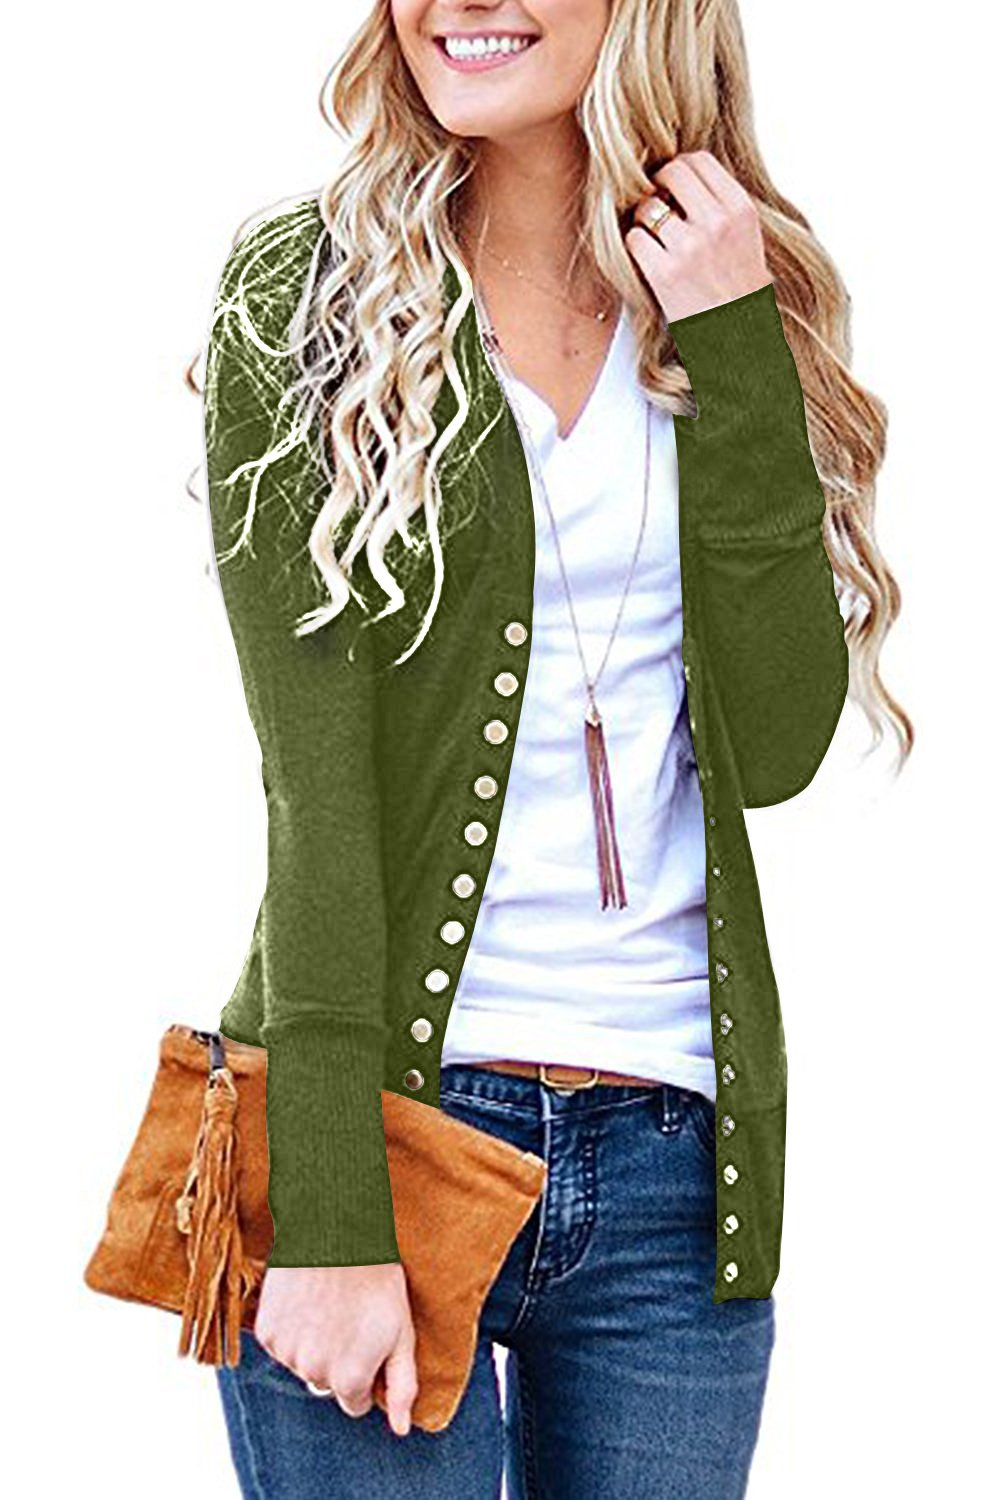 Steven McQueen Women's S-3XL Solid Button Front Knitwears Long Sleeve Casual Cardigans Olive M